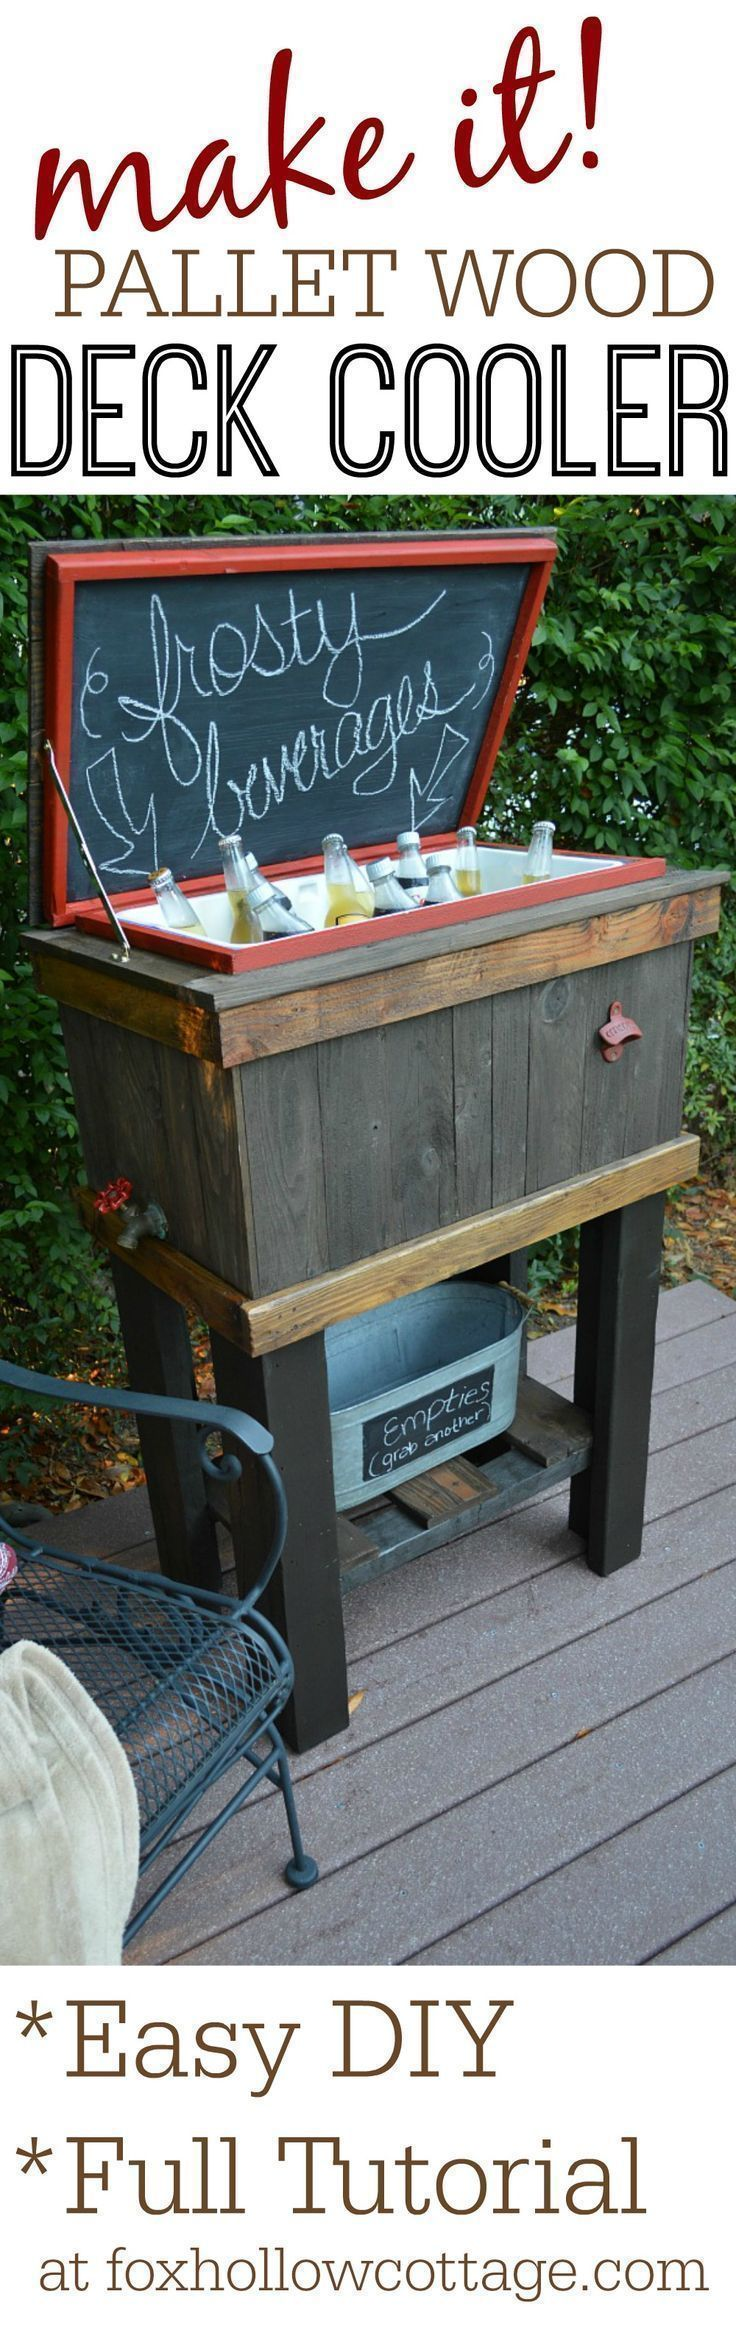 How-To Build A Wood Cooler Stand   DIY Weekend Pallet Project Idea for Porch Patio Deck or Tailgating! Full tutorial at foxhollowcottage.com